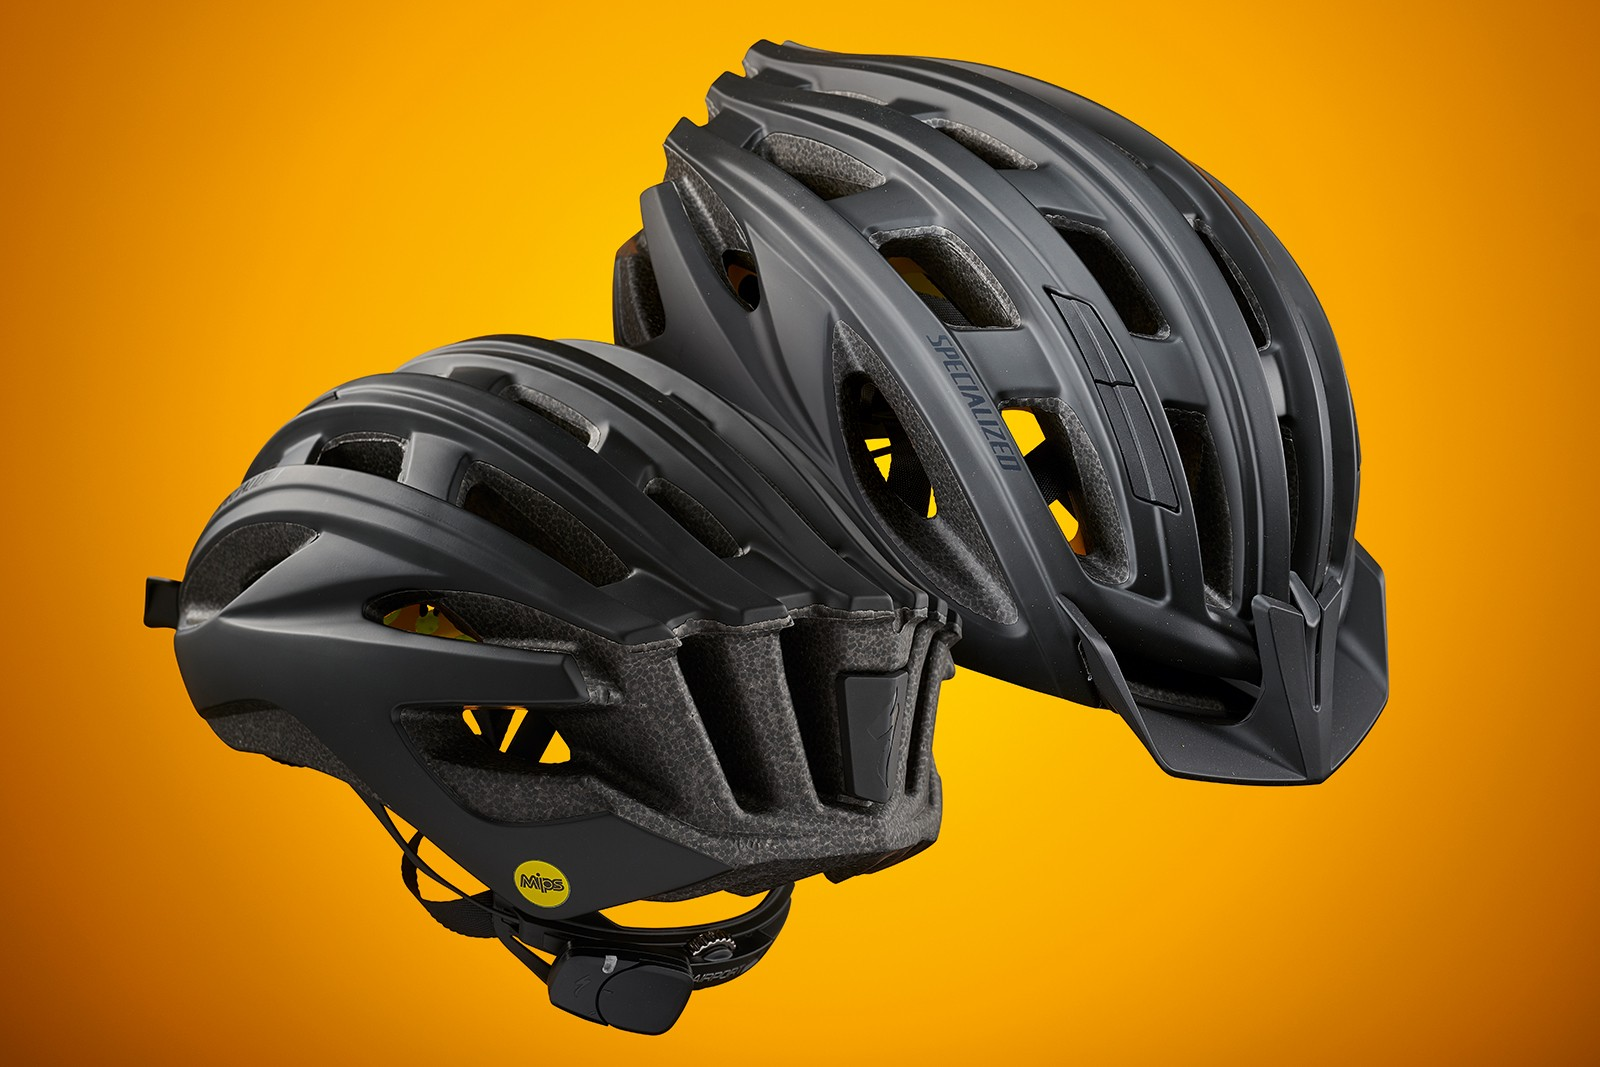 Specialized Propero 3 ANGI road helmet with a sensor that connects to a smartphone